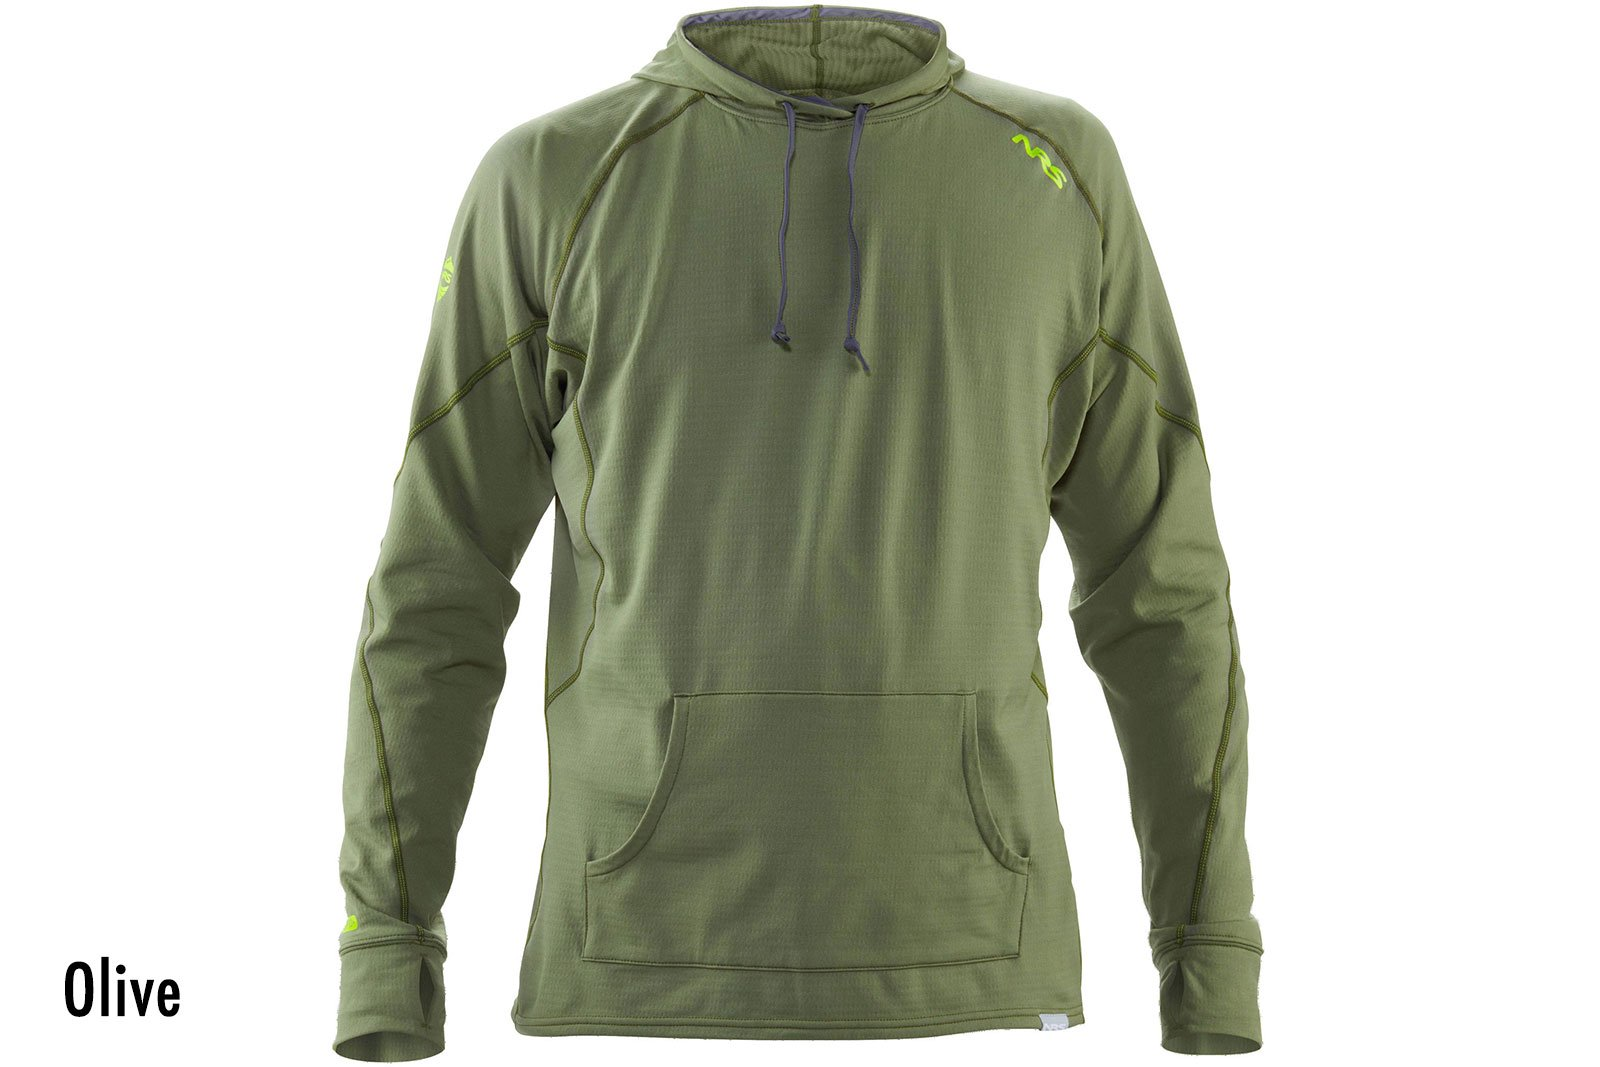 <img class='new_mark_img1' src='https://img.shop-pro.jp/img/new/icons5.gif' style='border:none;display:inline;margin:0px;padding:0px;width:auto;' />NRS Men's H2Core Lightweight Hoodie ライトウェイトフーディー (10120)